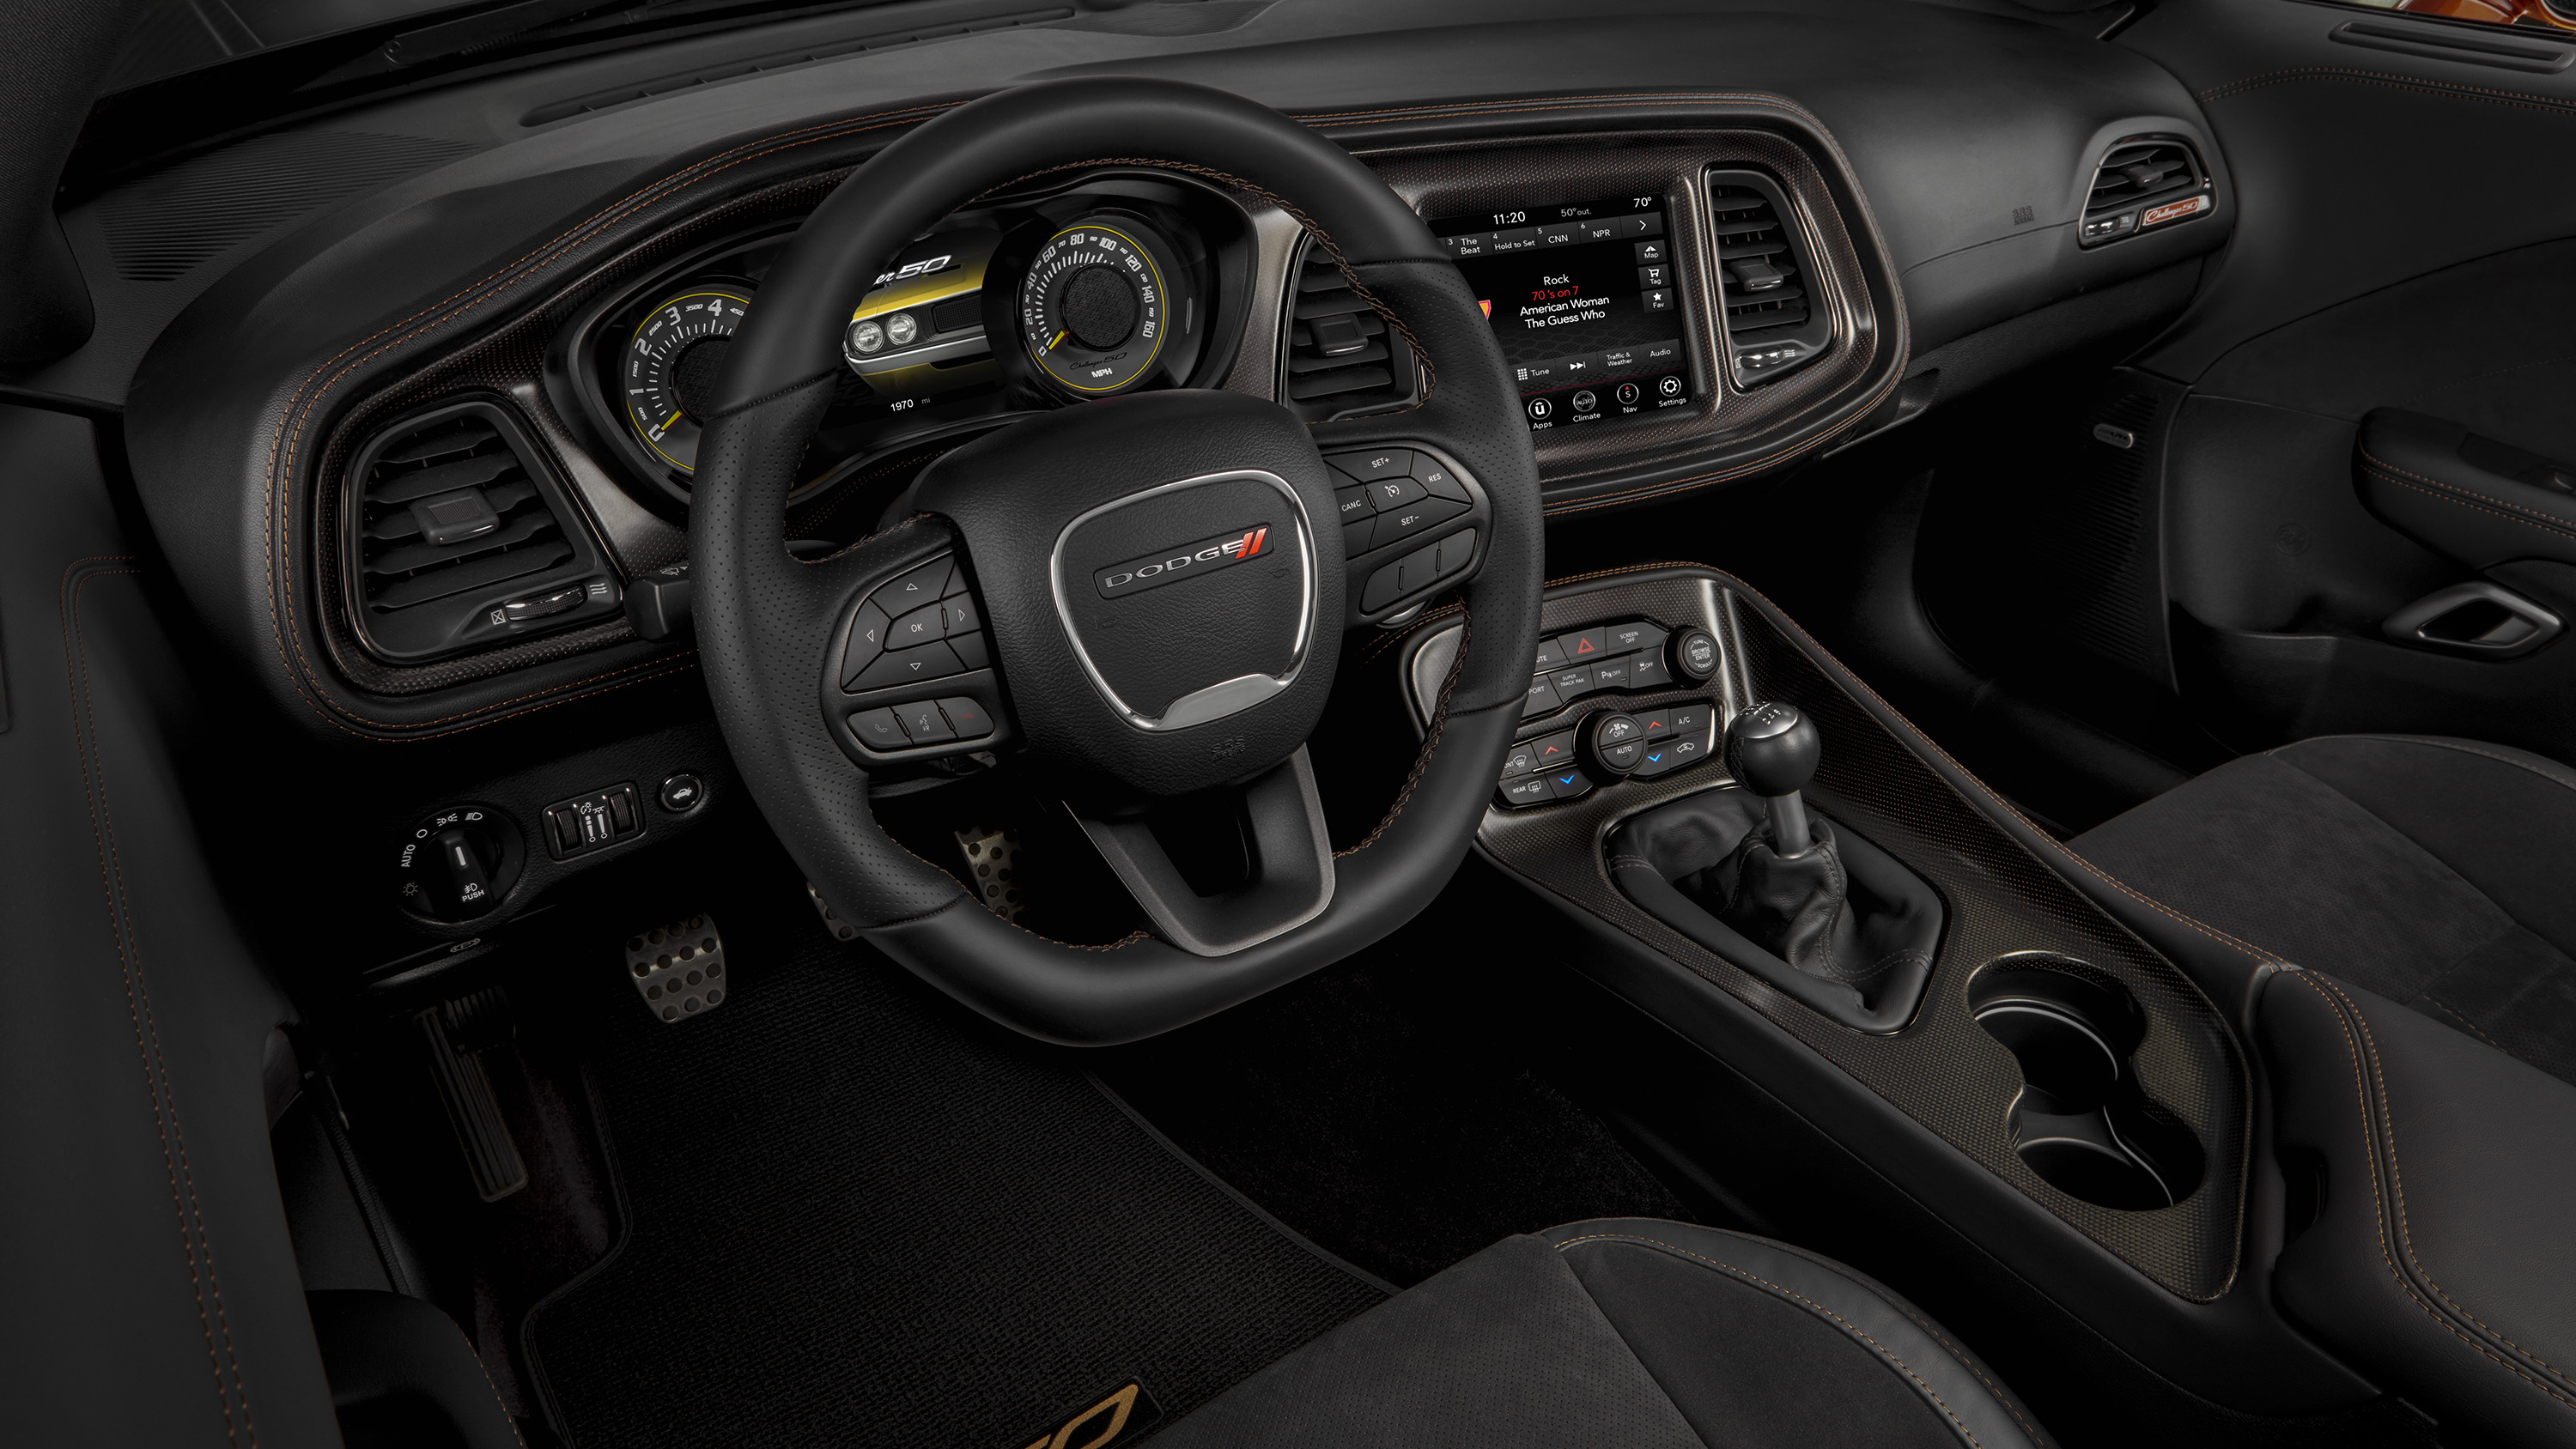 2020 Dodge Challenger Rt Shaker 50th Anniversary Edition Interior Wallpaper Hd Car Wallpapers Id 13793